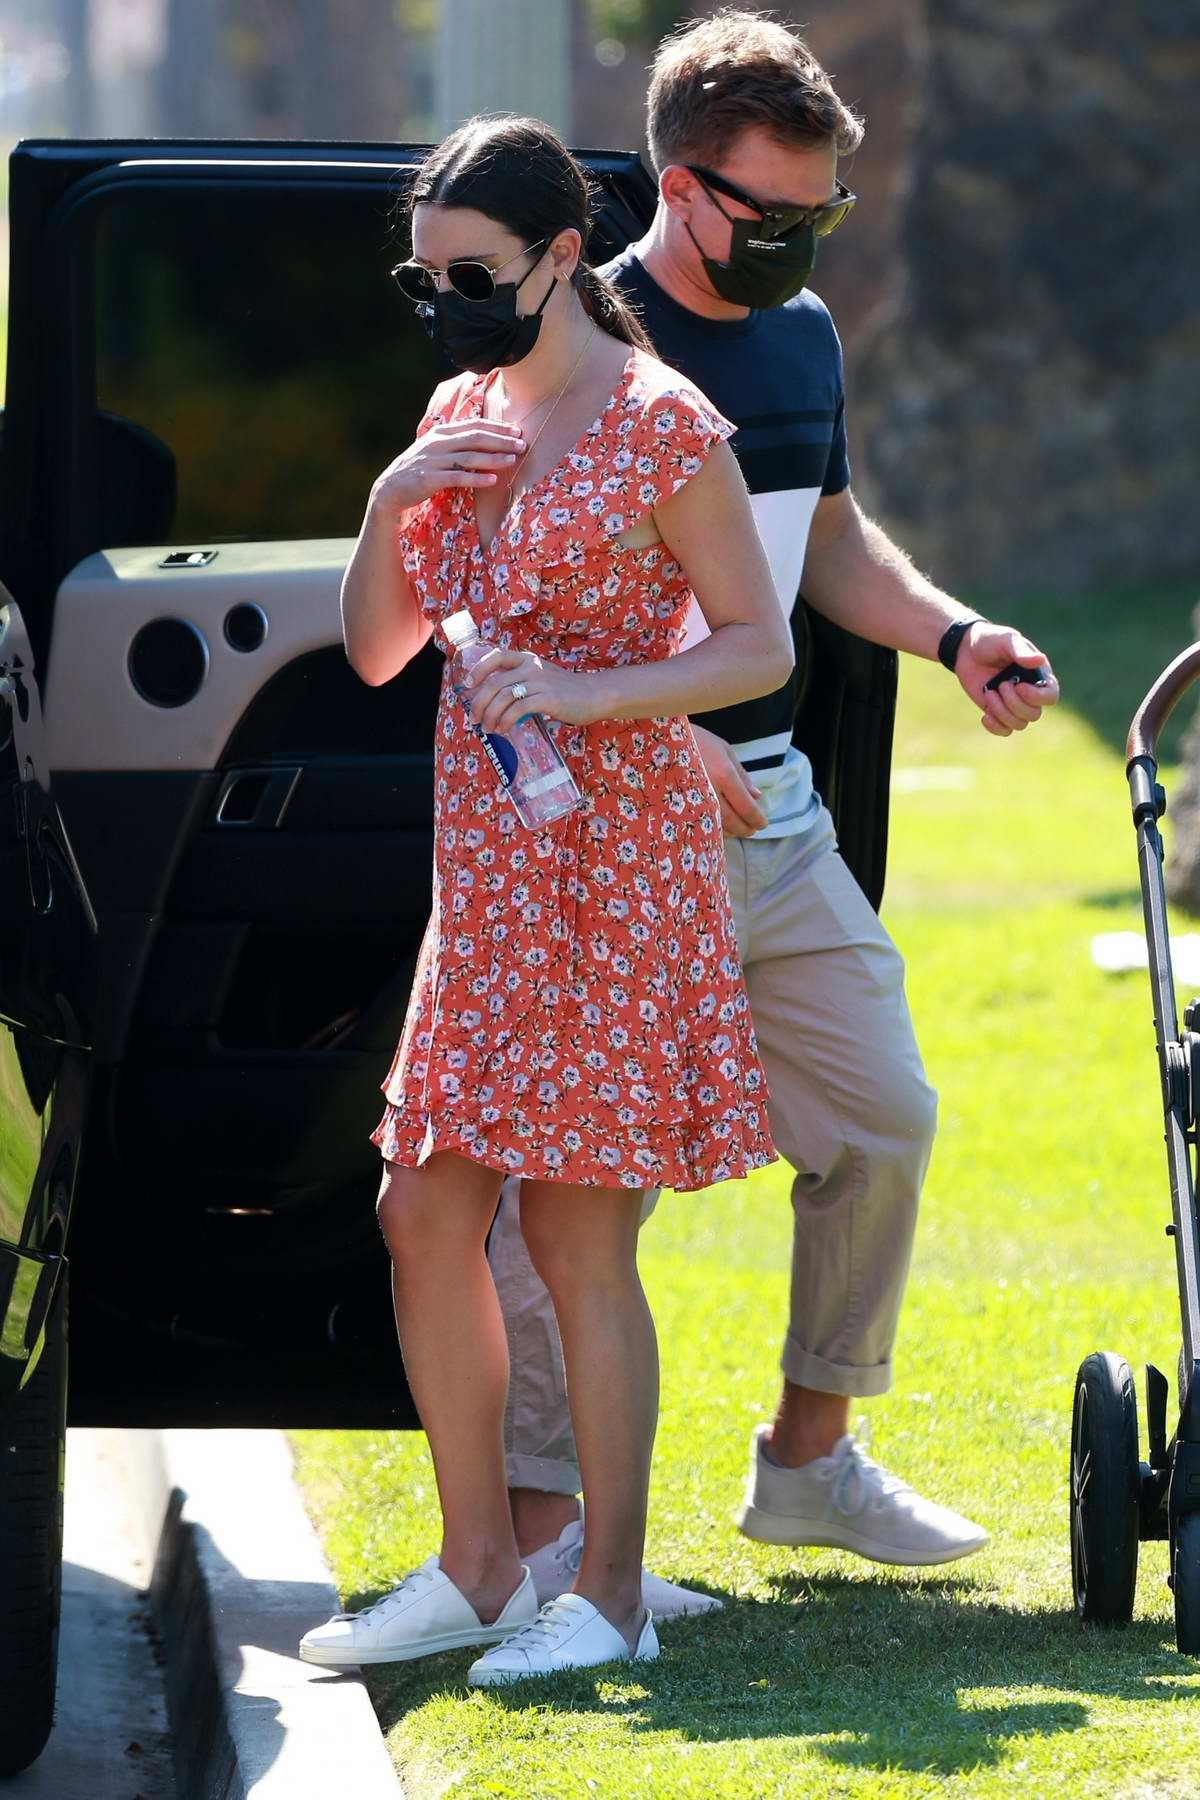 Lea Michele wears an orange floral print dress as she takes her baby out for an afternoon walk in Brentwood, California